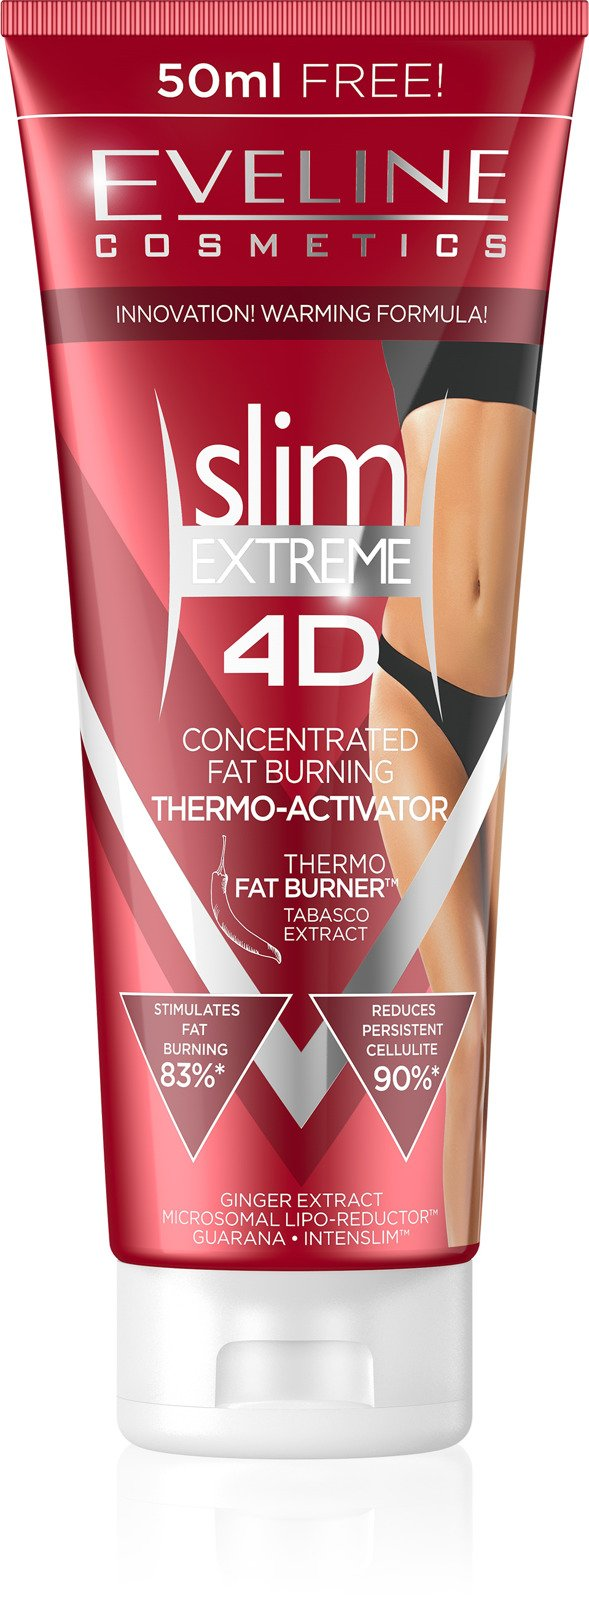 thermo slimming wrap kommentaare